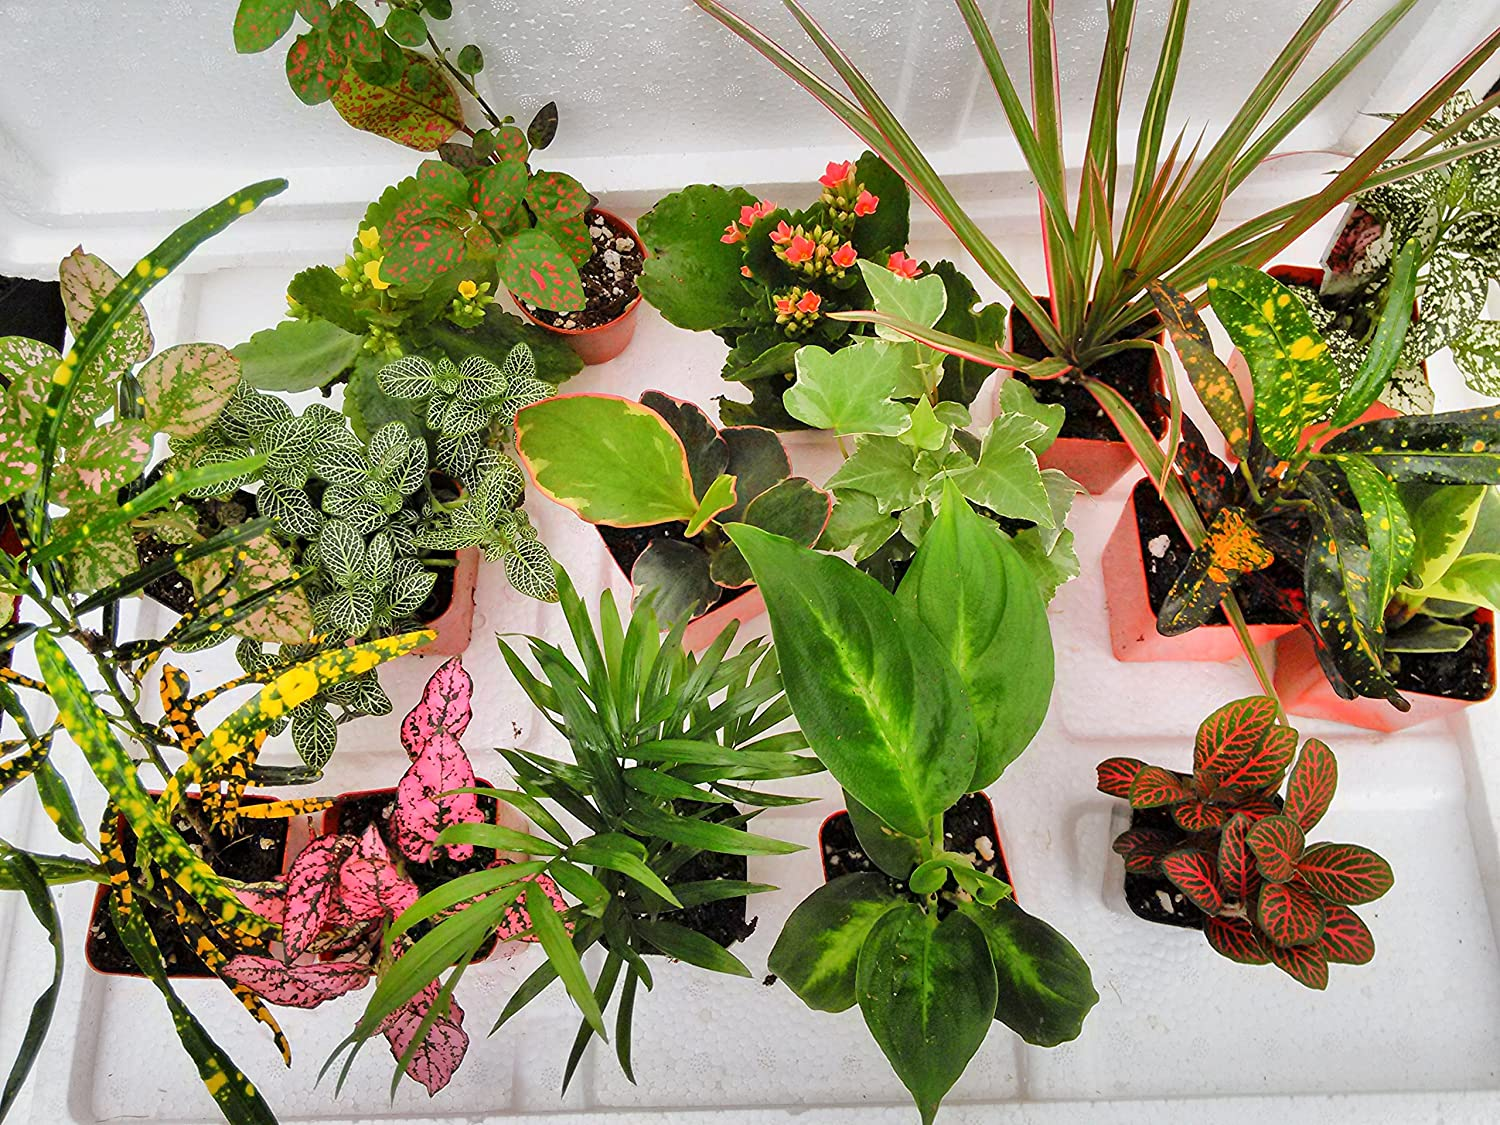 Terrarium Fairy Garden Plants – 6 Plants in 2.5 Is Approximately 4 to 6 Inches Height of the Plant